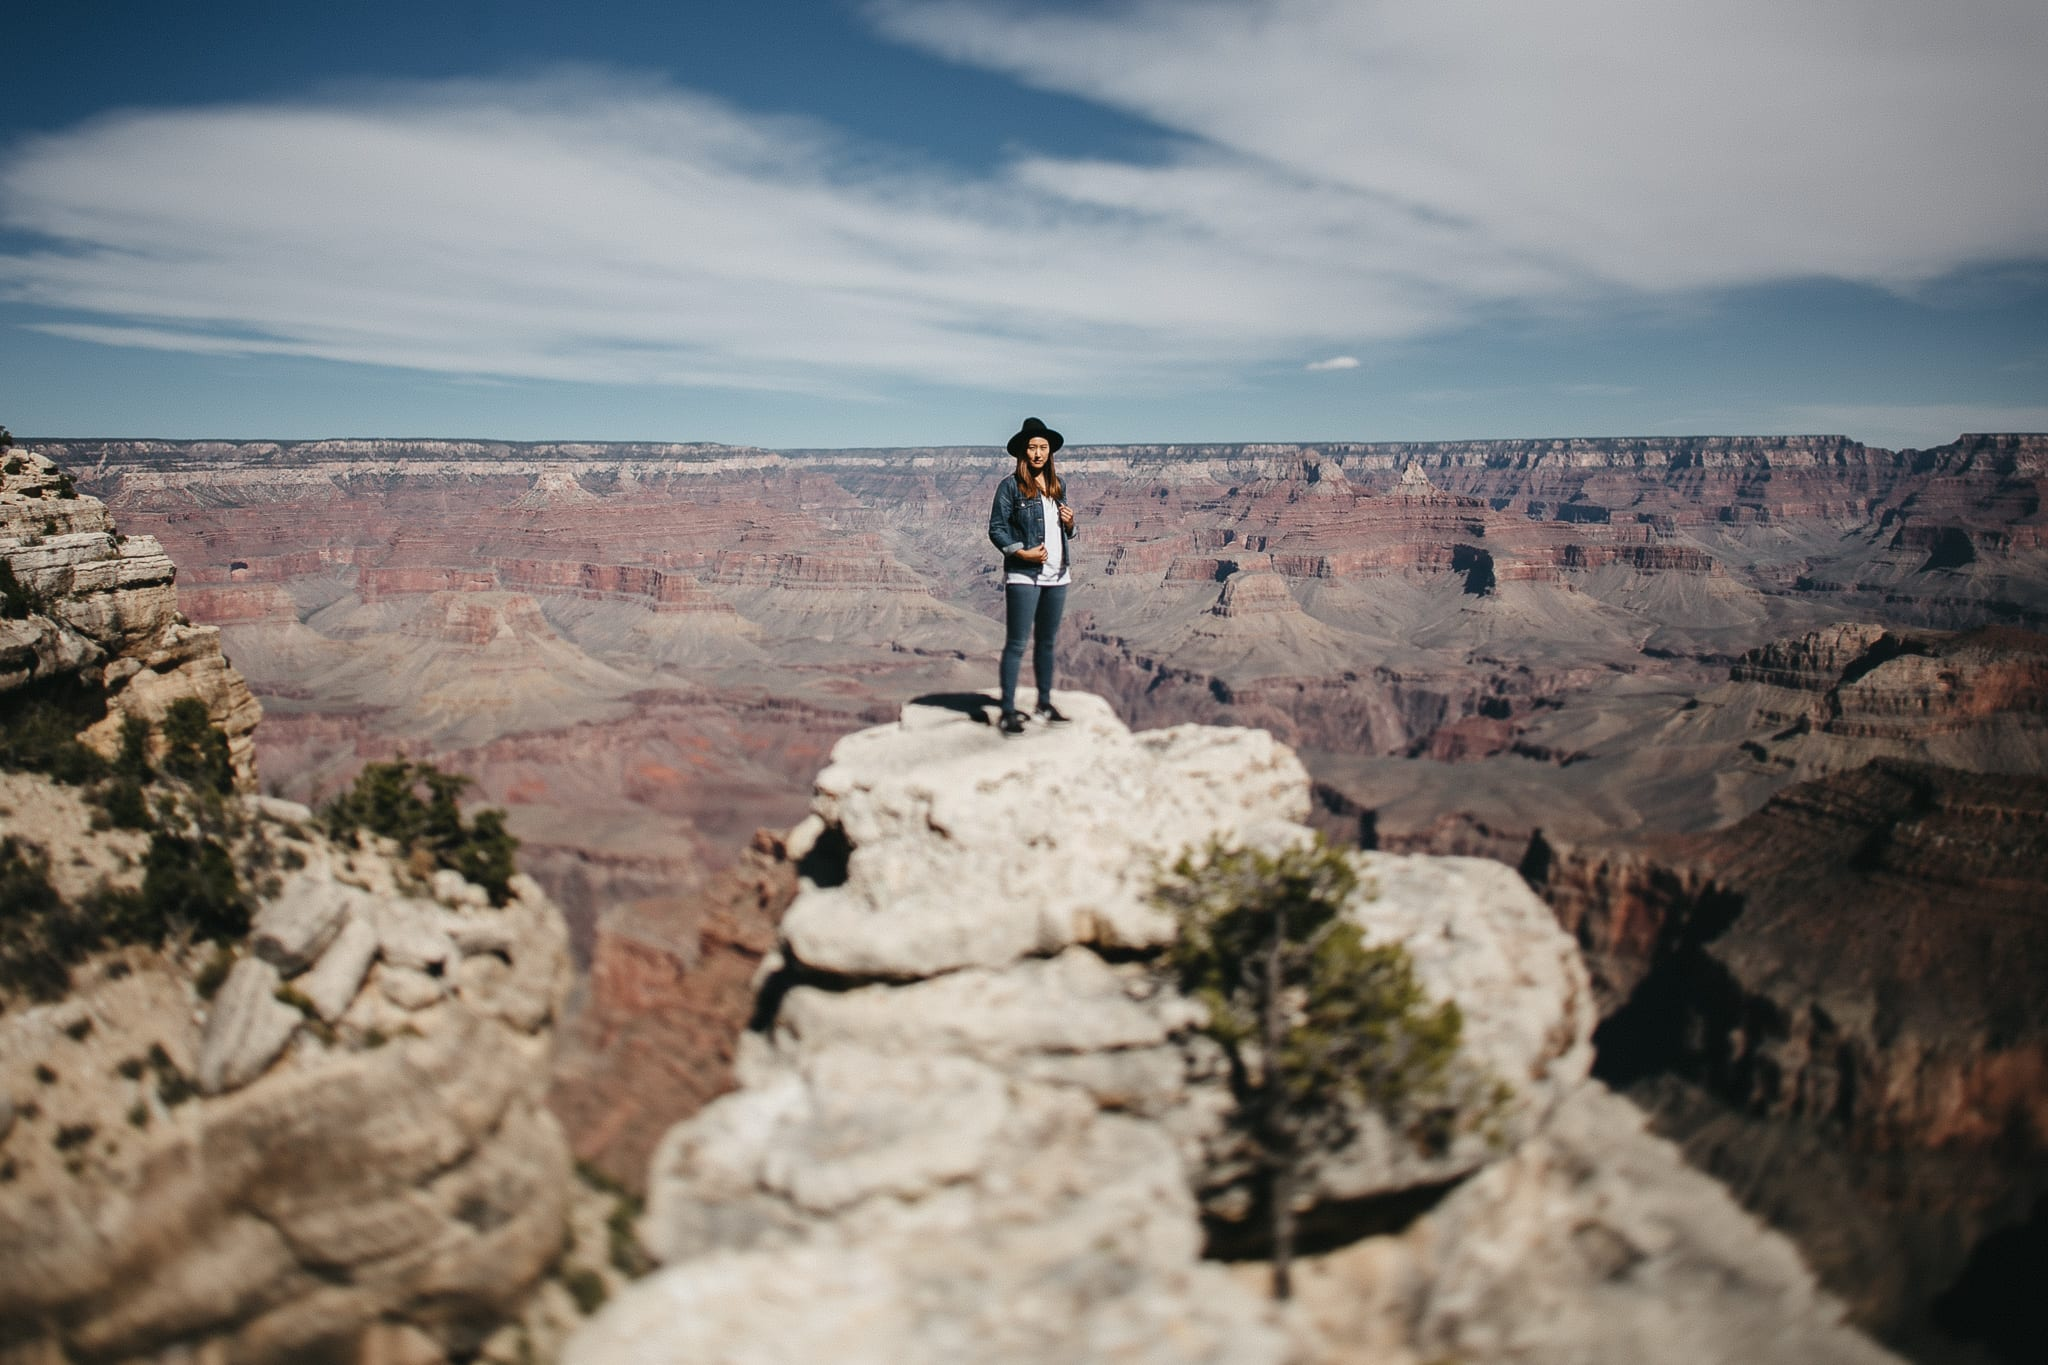 jc1-grand-canyon-arizona-lifestyle-portrait-photographer-3